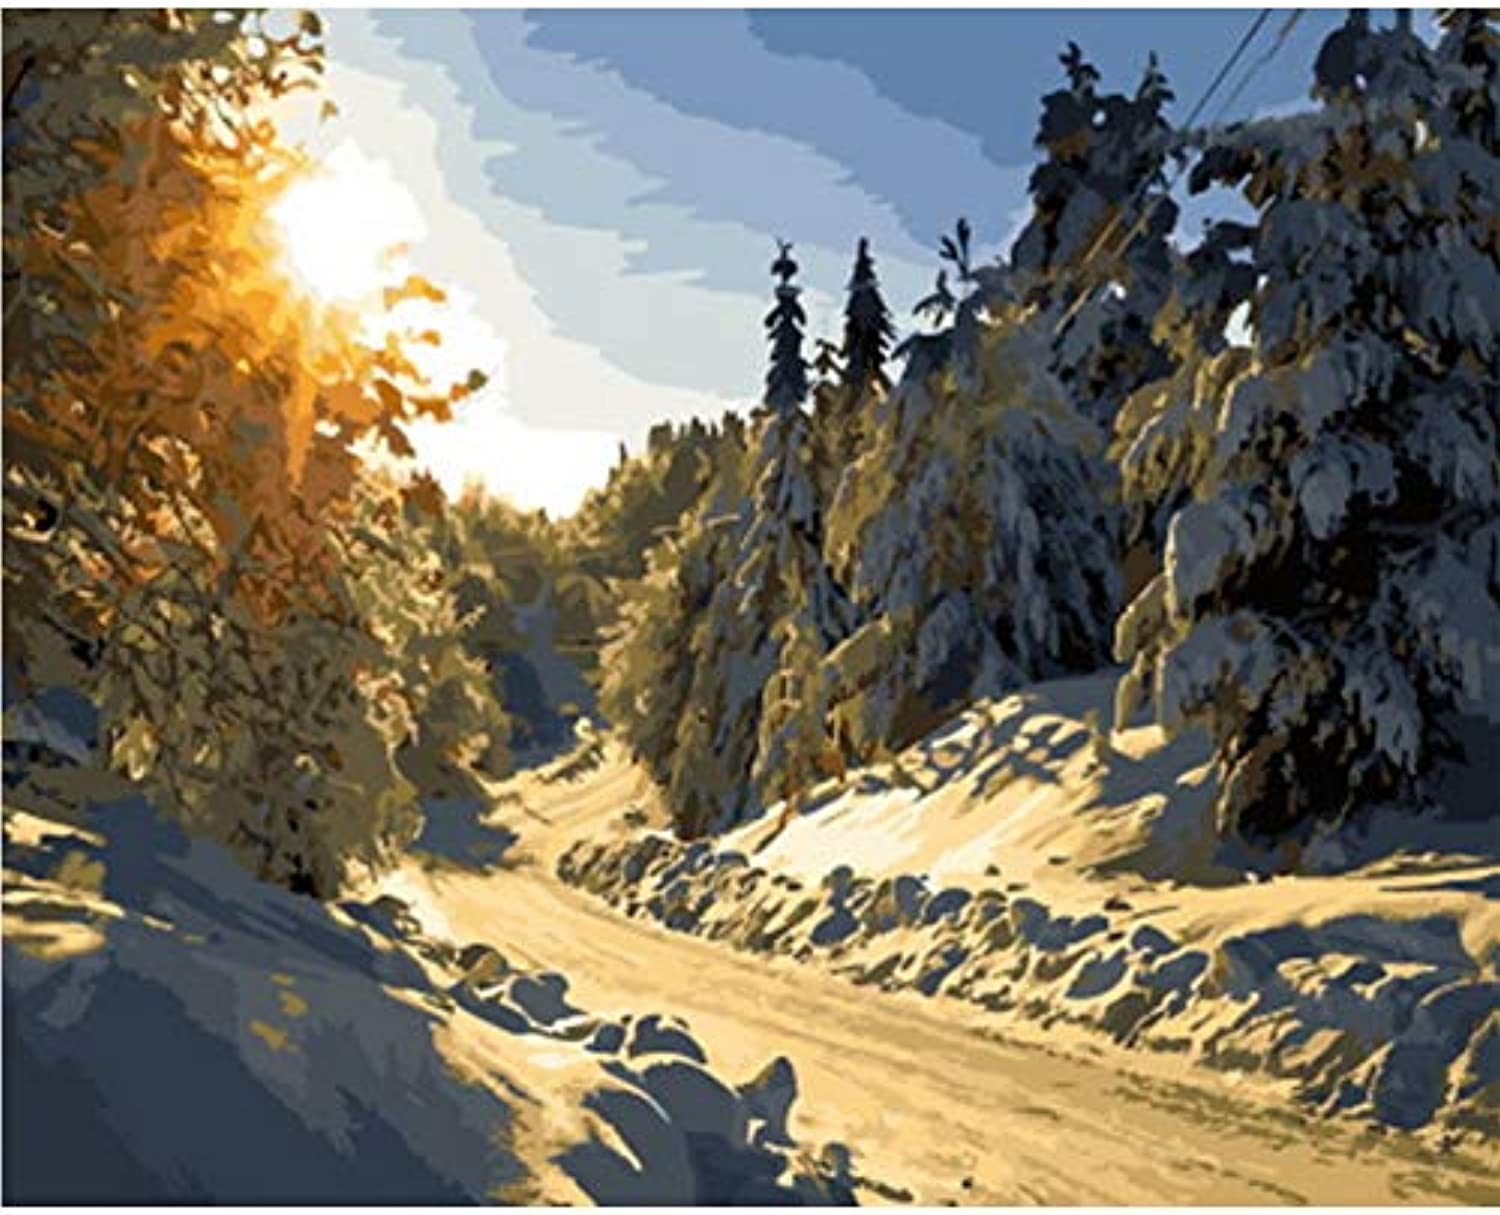 CAYYOU DIY picture oil painting by numbers wall decor painting on canvas for home decor winter snow, Framed, 50x60cm